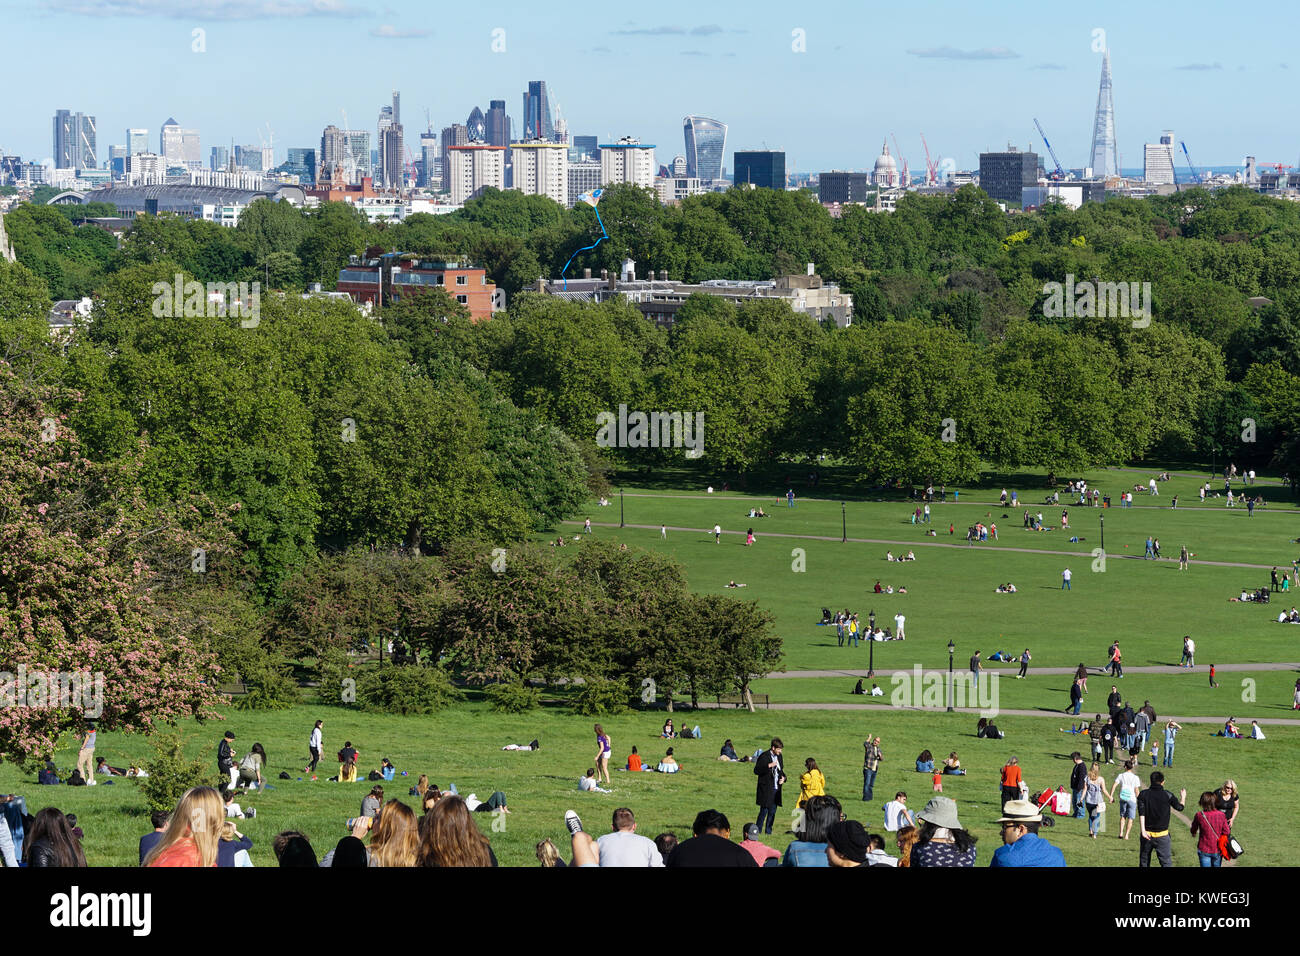 London skyline from Primrose Hill on a sunny spring day. - Stock Image